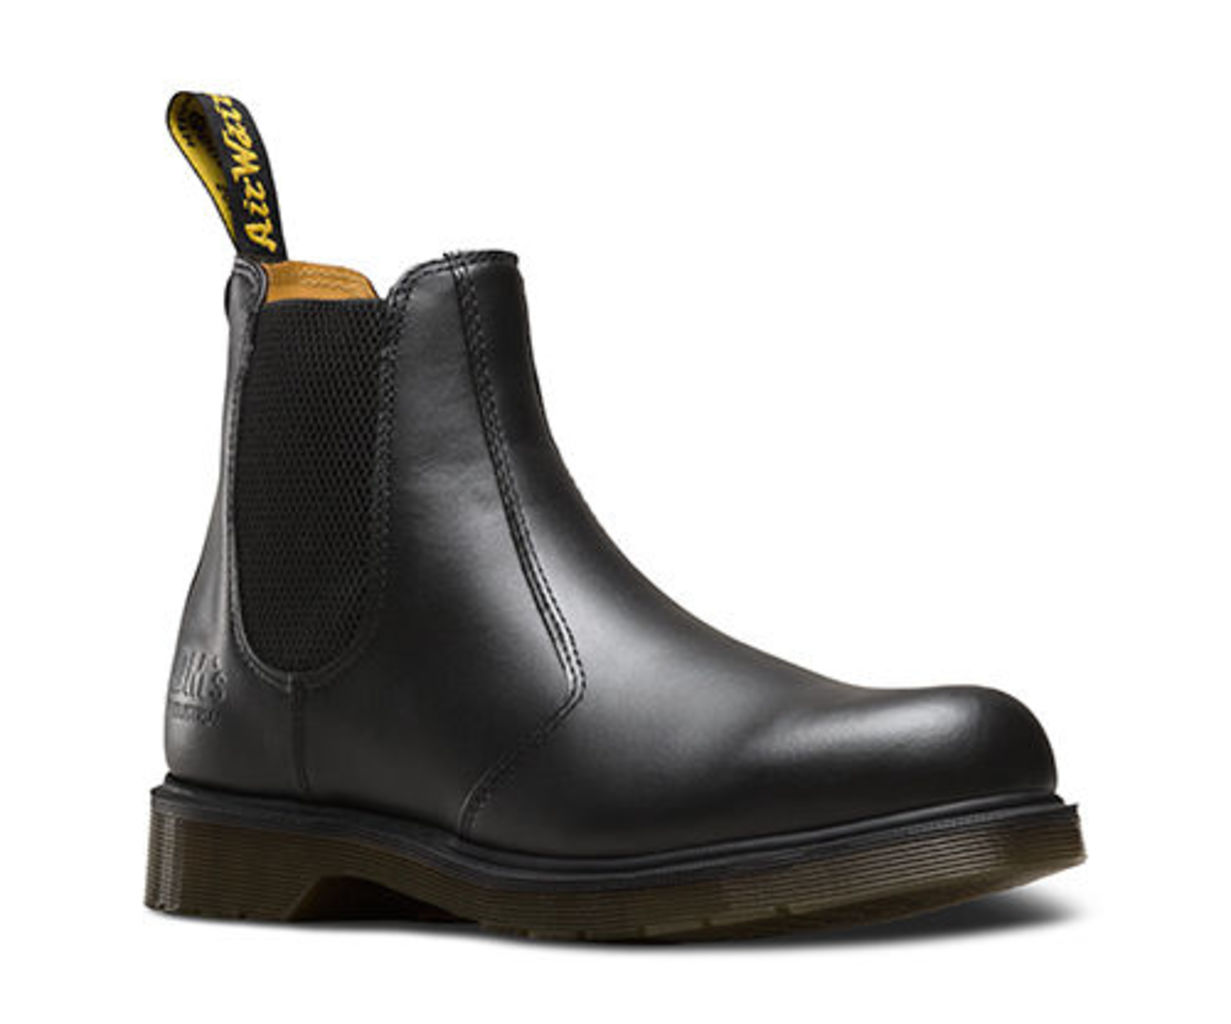 Occupational 8250 Boot